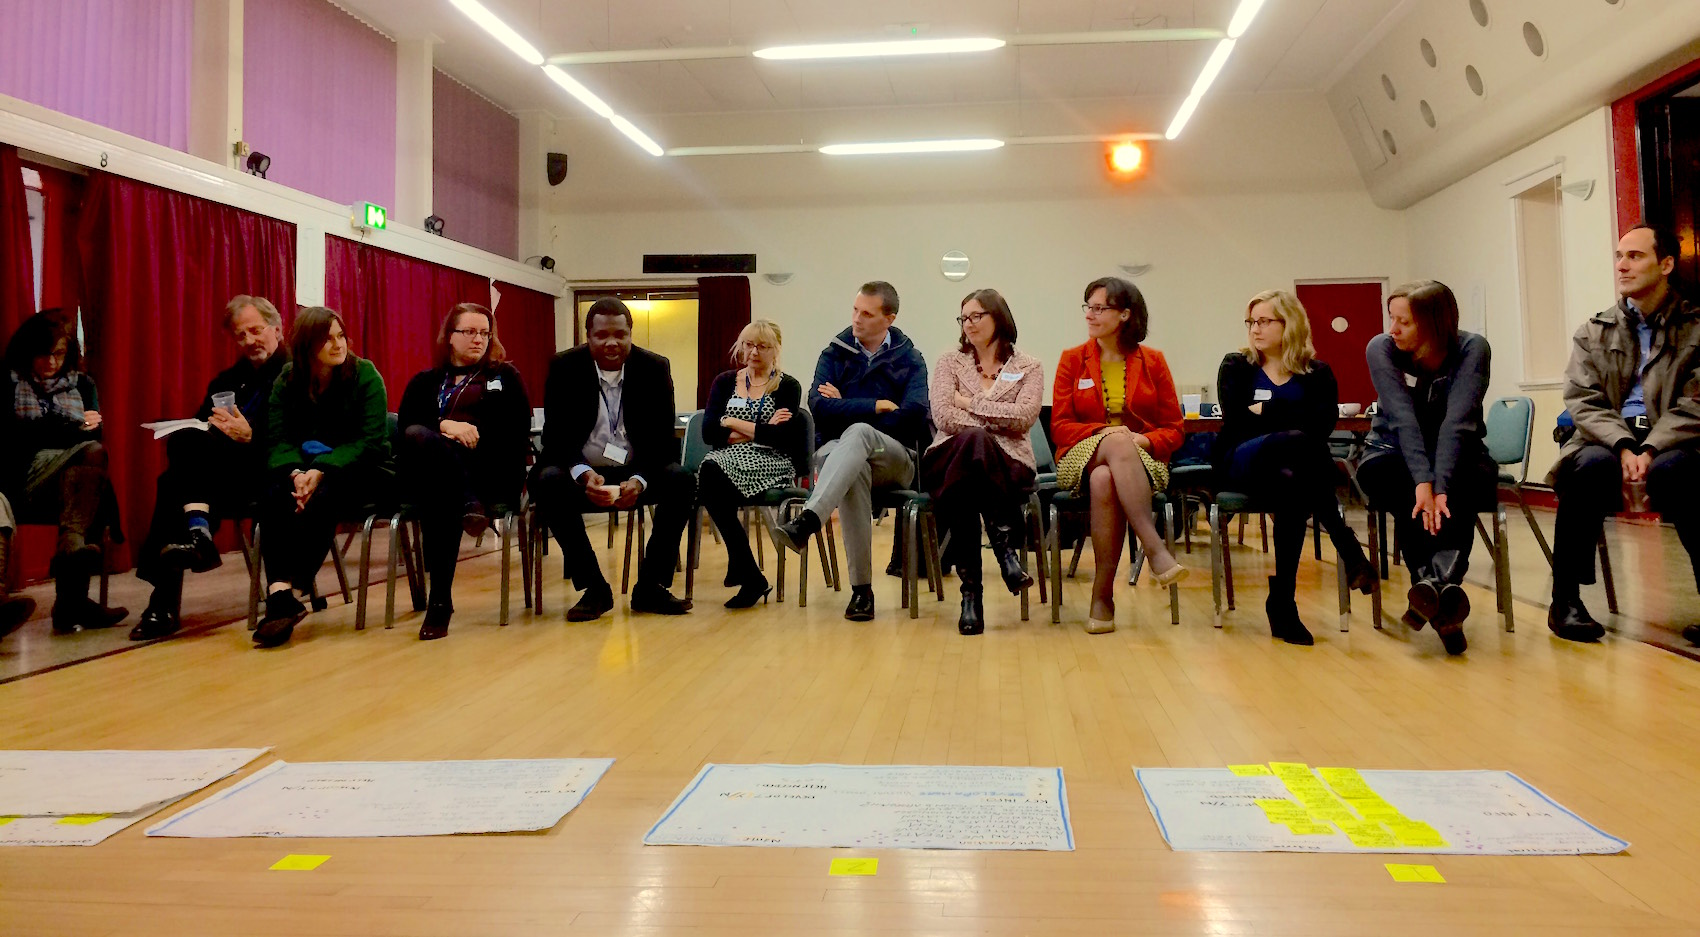 Participatory leadership in public services. - Building capacity at Adur & Worthing District Council